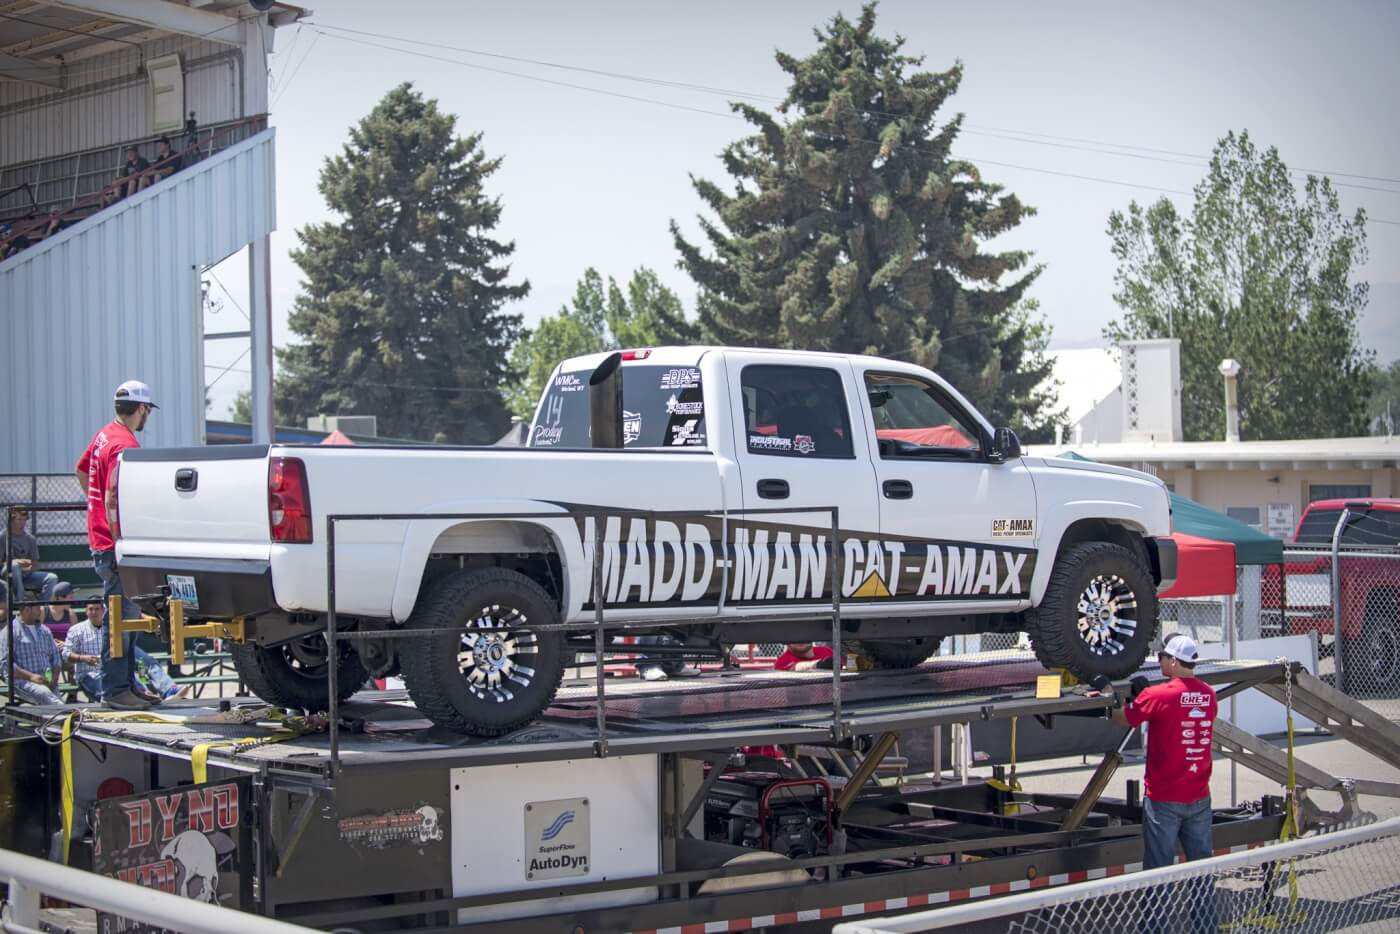 The dyno competition was held at the Power County Fairgrounds beside the dirt track where the evening pull and drag race were held. Trucks ran on Custom Auto's portable chassis dyno throughout the day, with a handful surpassing the 1,000-horsepower mark.